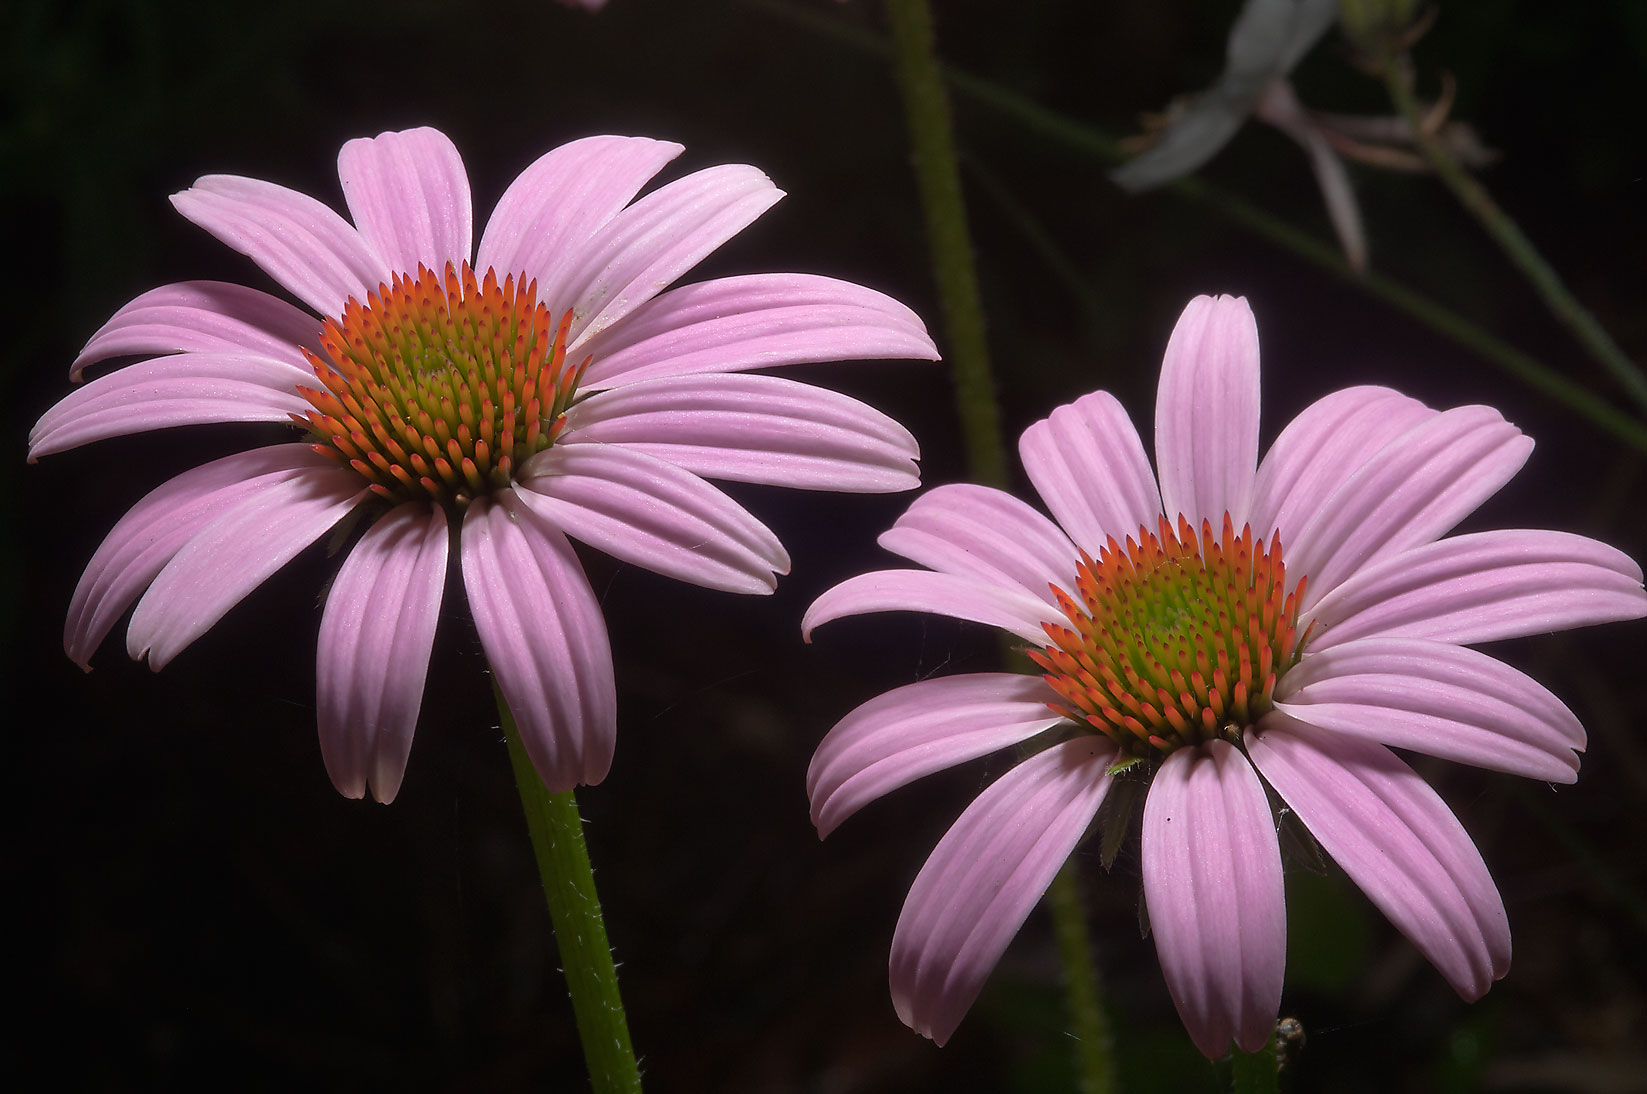 Purple coneflowers in Mercer Arboretum and Botanical Gardens. Humble (Houston area), Texas